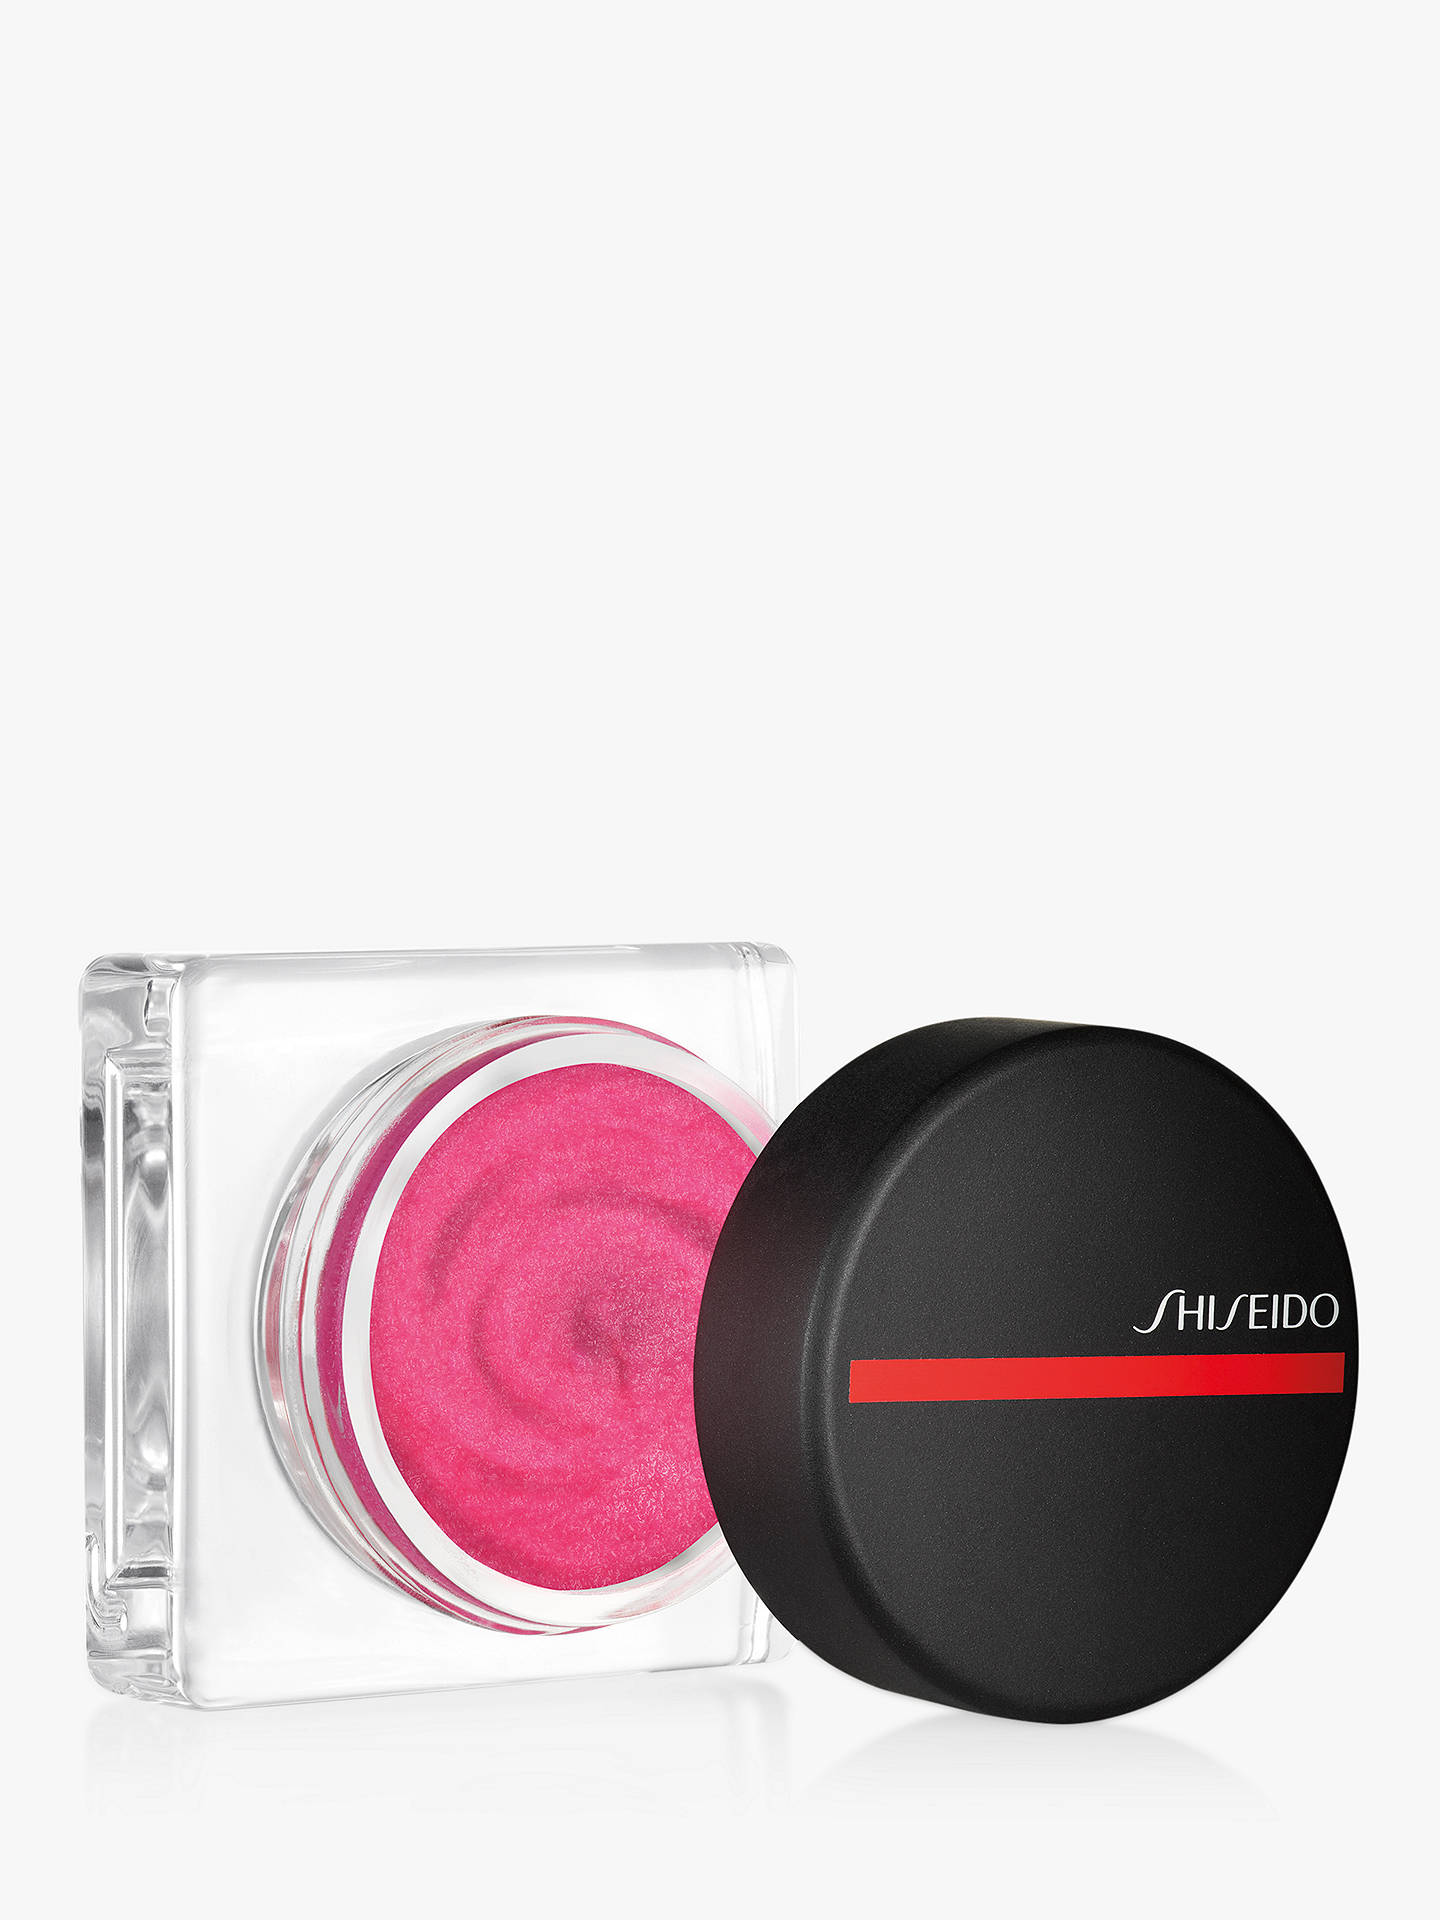 BuyShiseido Minimalist Whipped Powder Blush, Kokei 08 Online at johnlewis.com